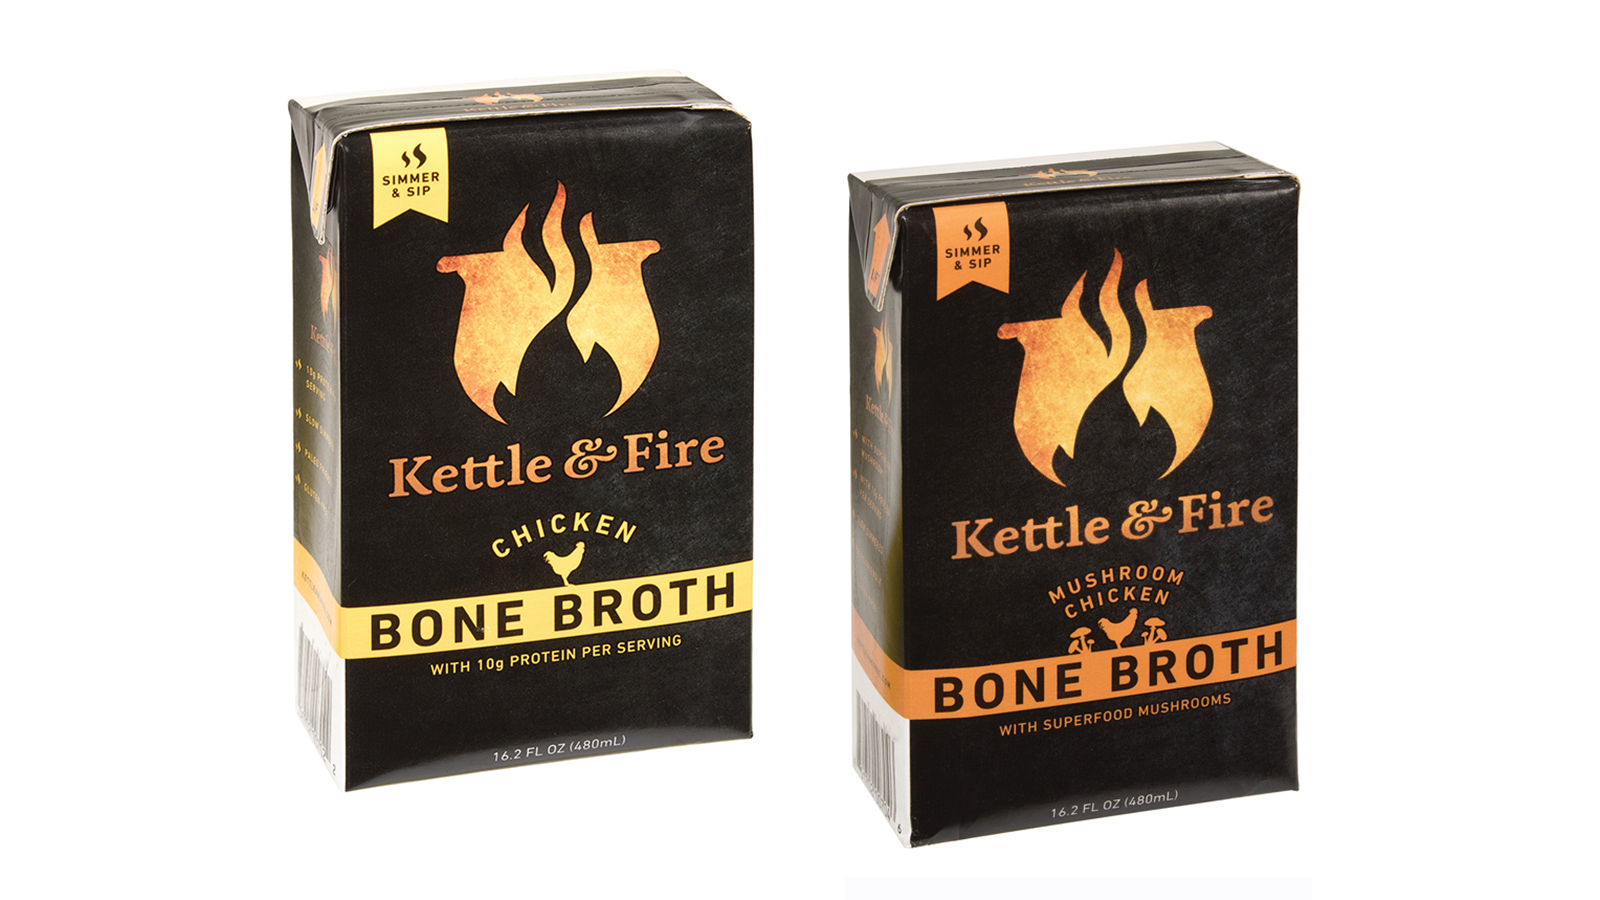 Kettle-&-Fire-Bone-Broth